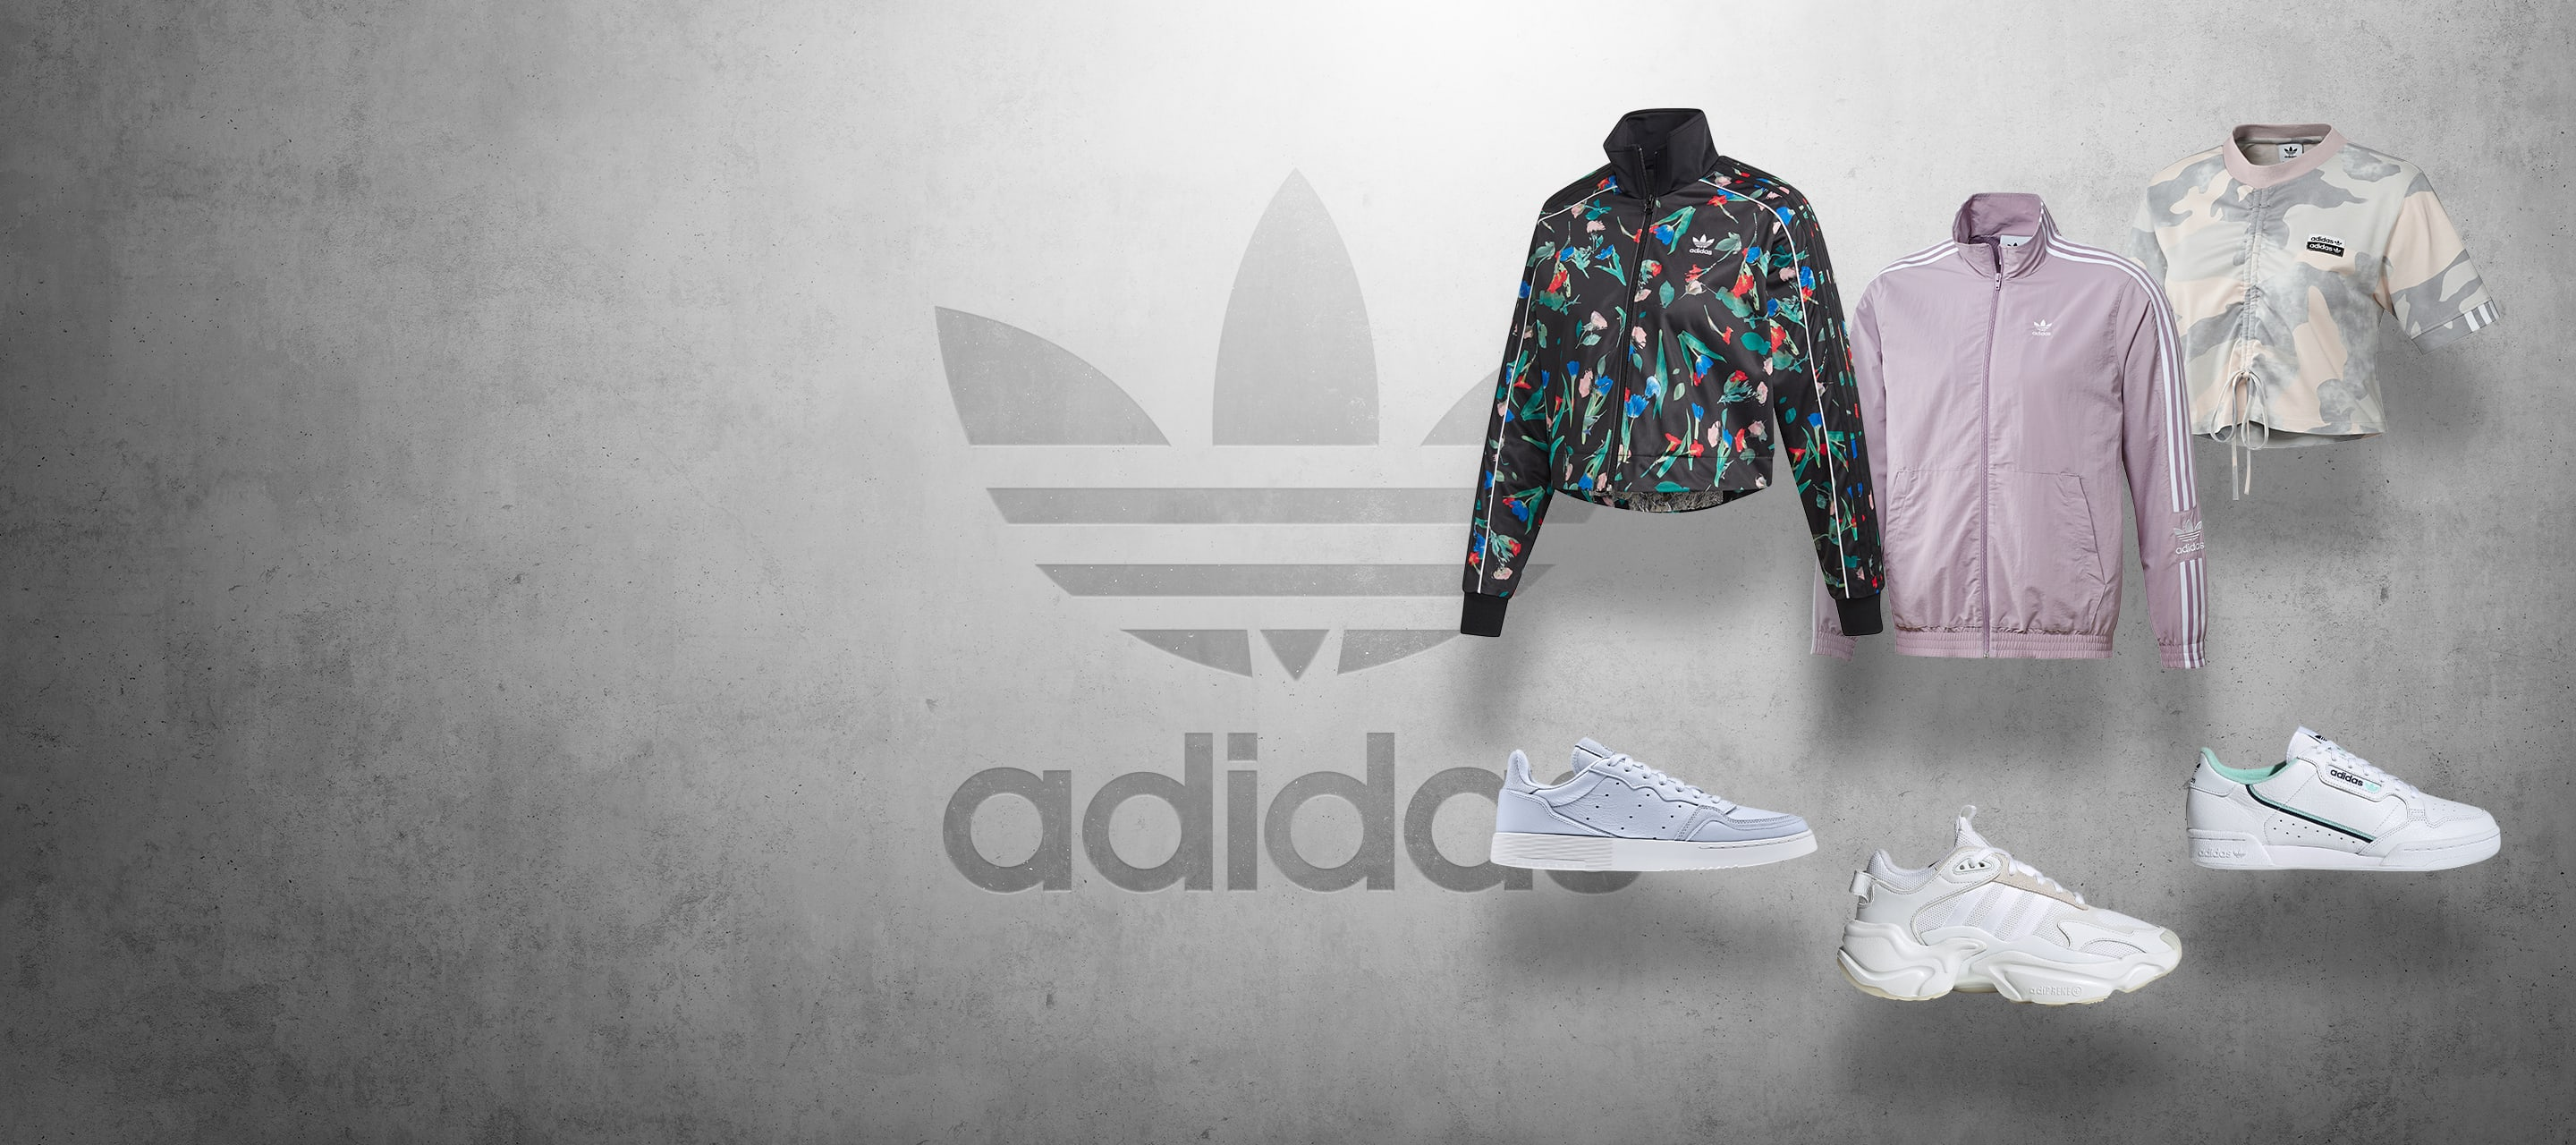 Moretón ajo Mariscos  adidas Sale | Shop discounted products on adidas' outlet